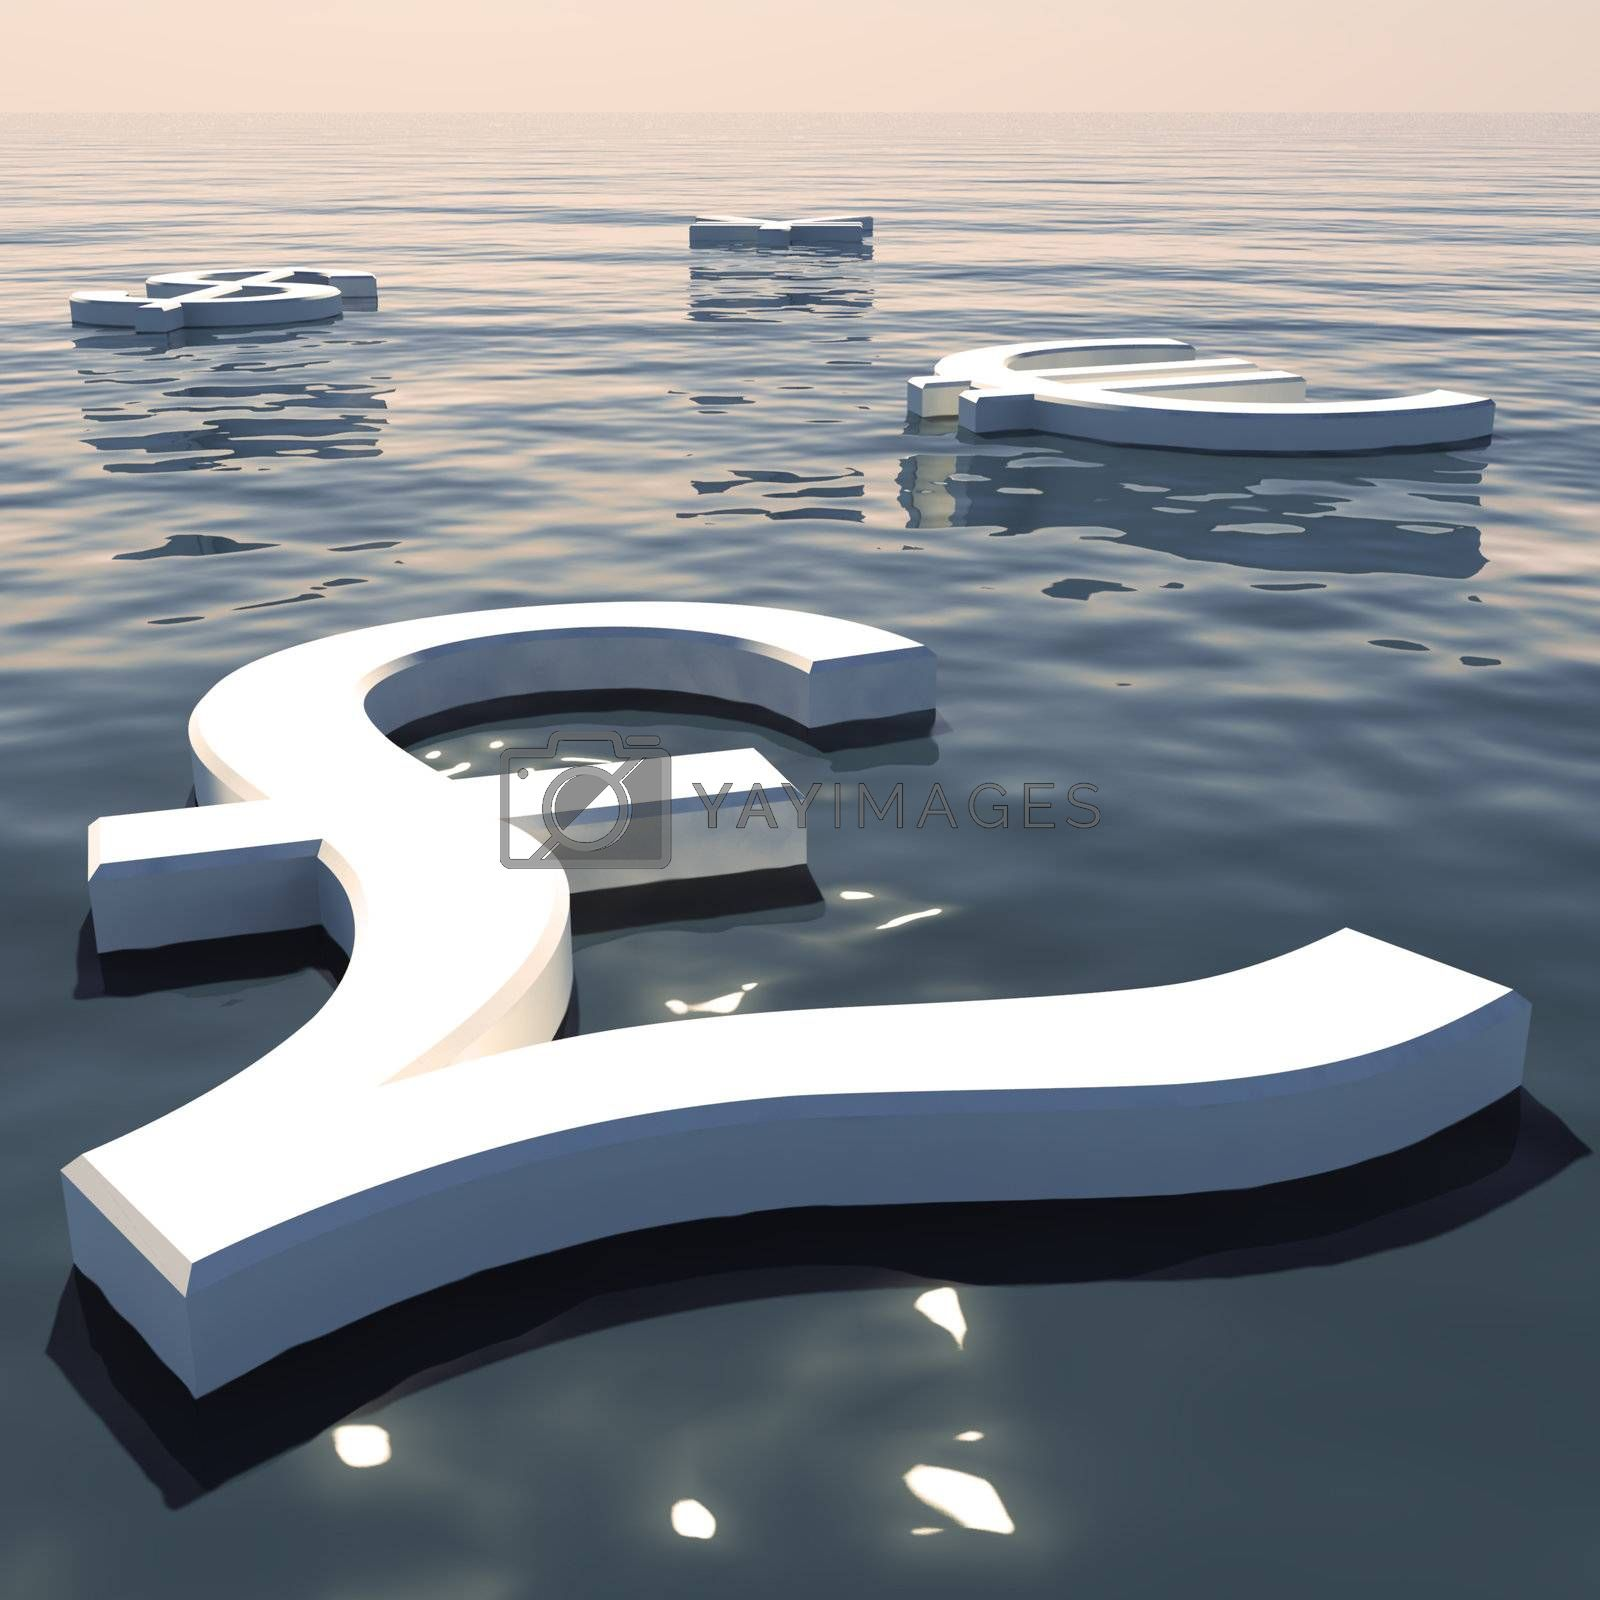 Pound Floating And Currencies Going Away Showing Money Exchange And Forex